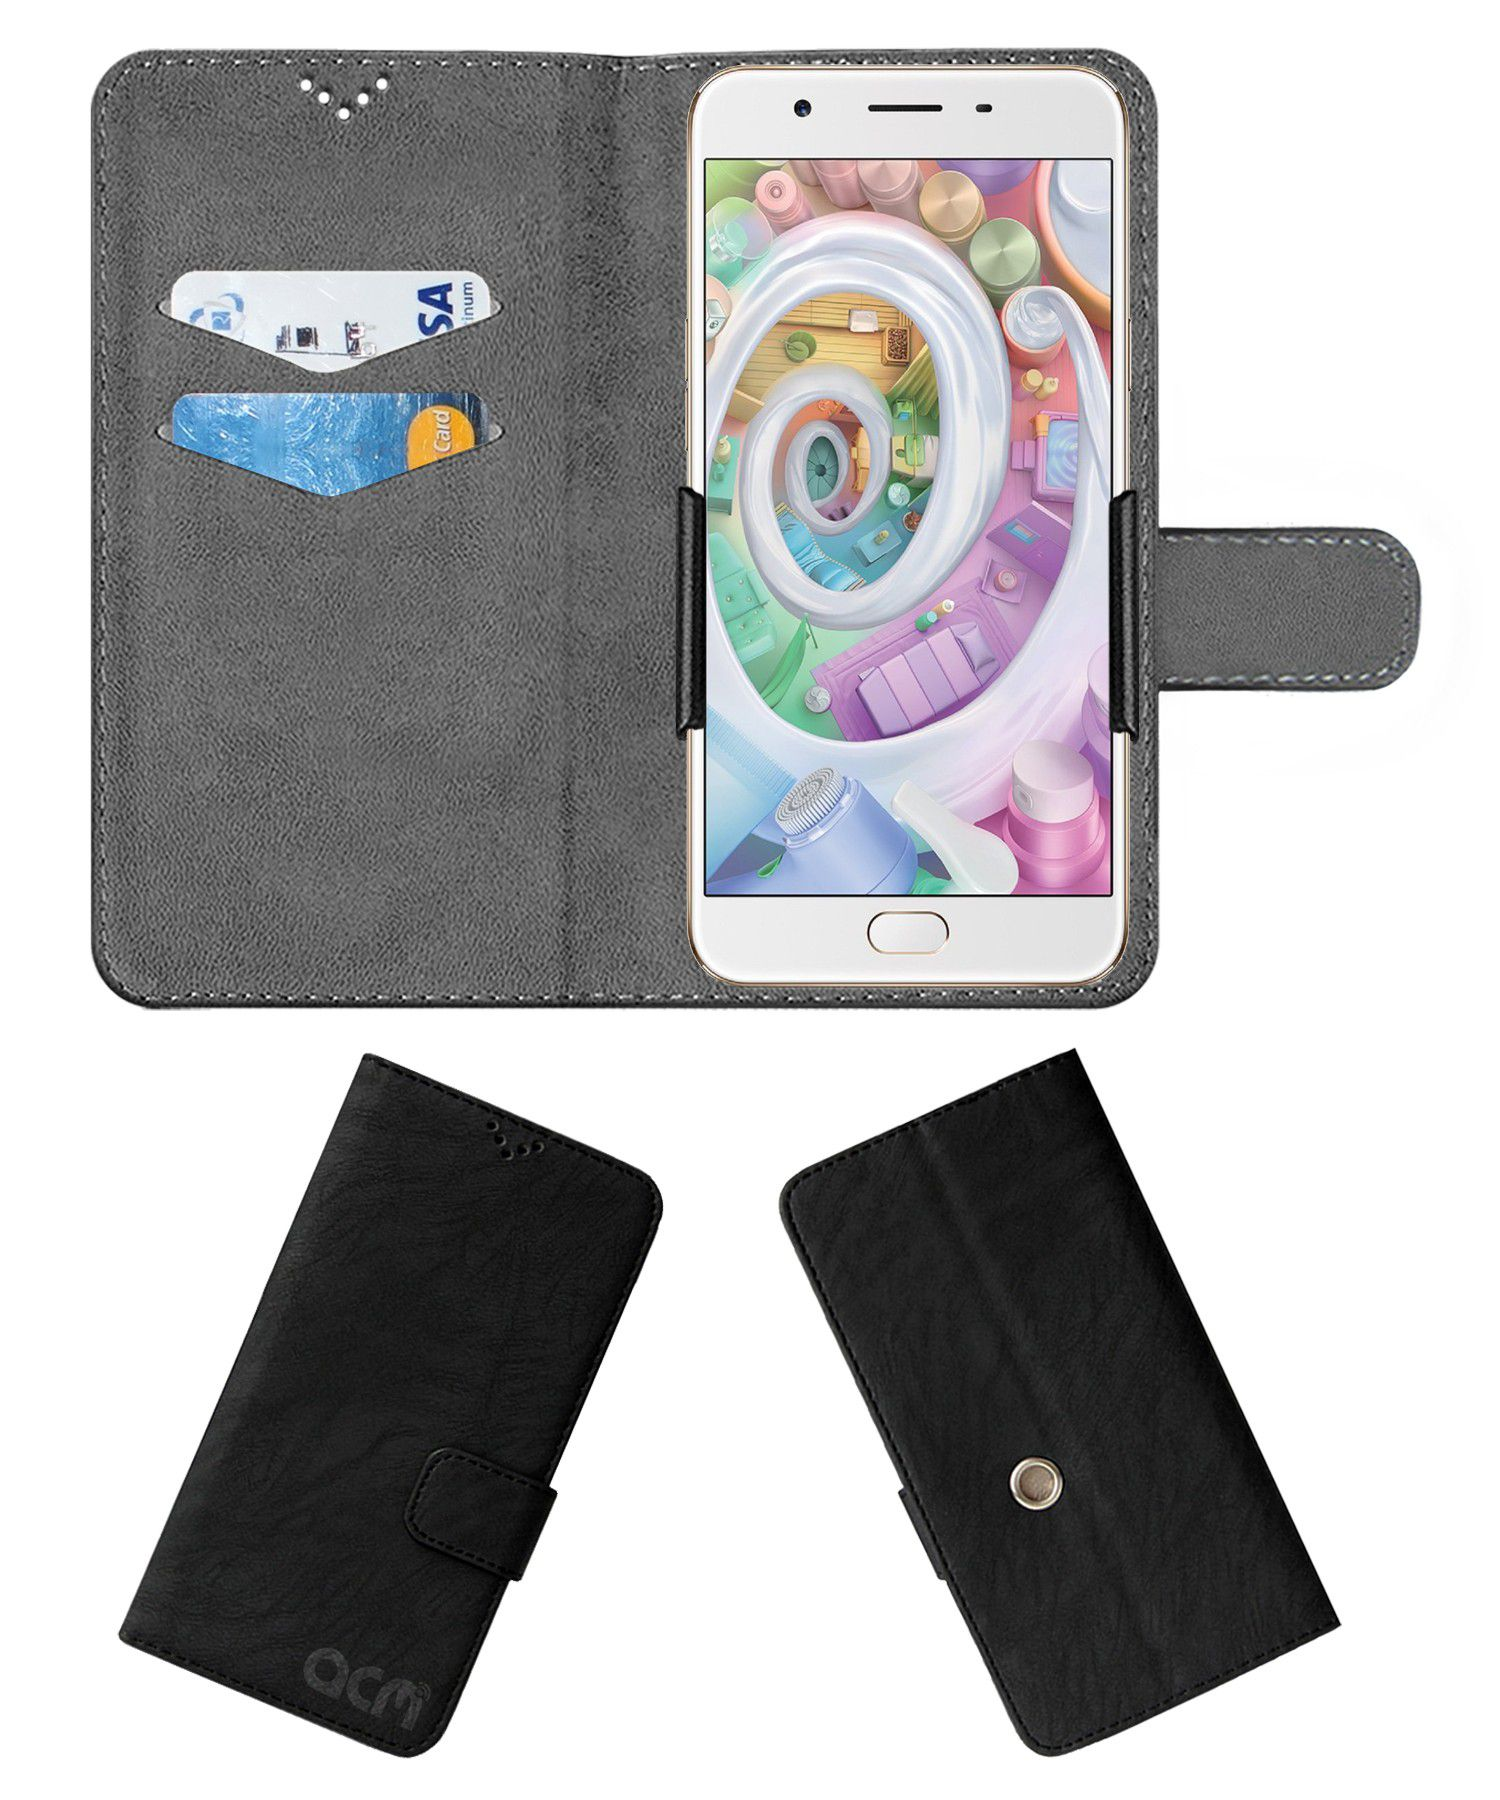 Oppo F1s Flip Cover by ACM - Black Clip holder to hold your mobile securely